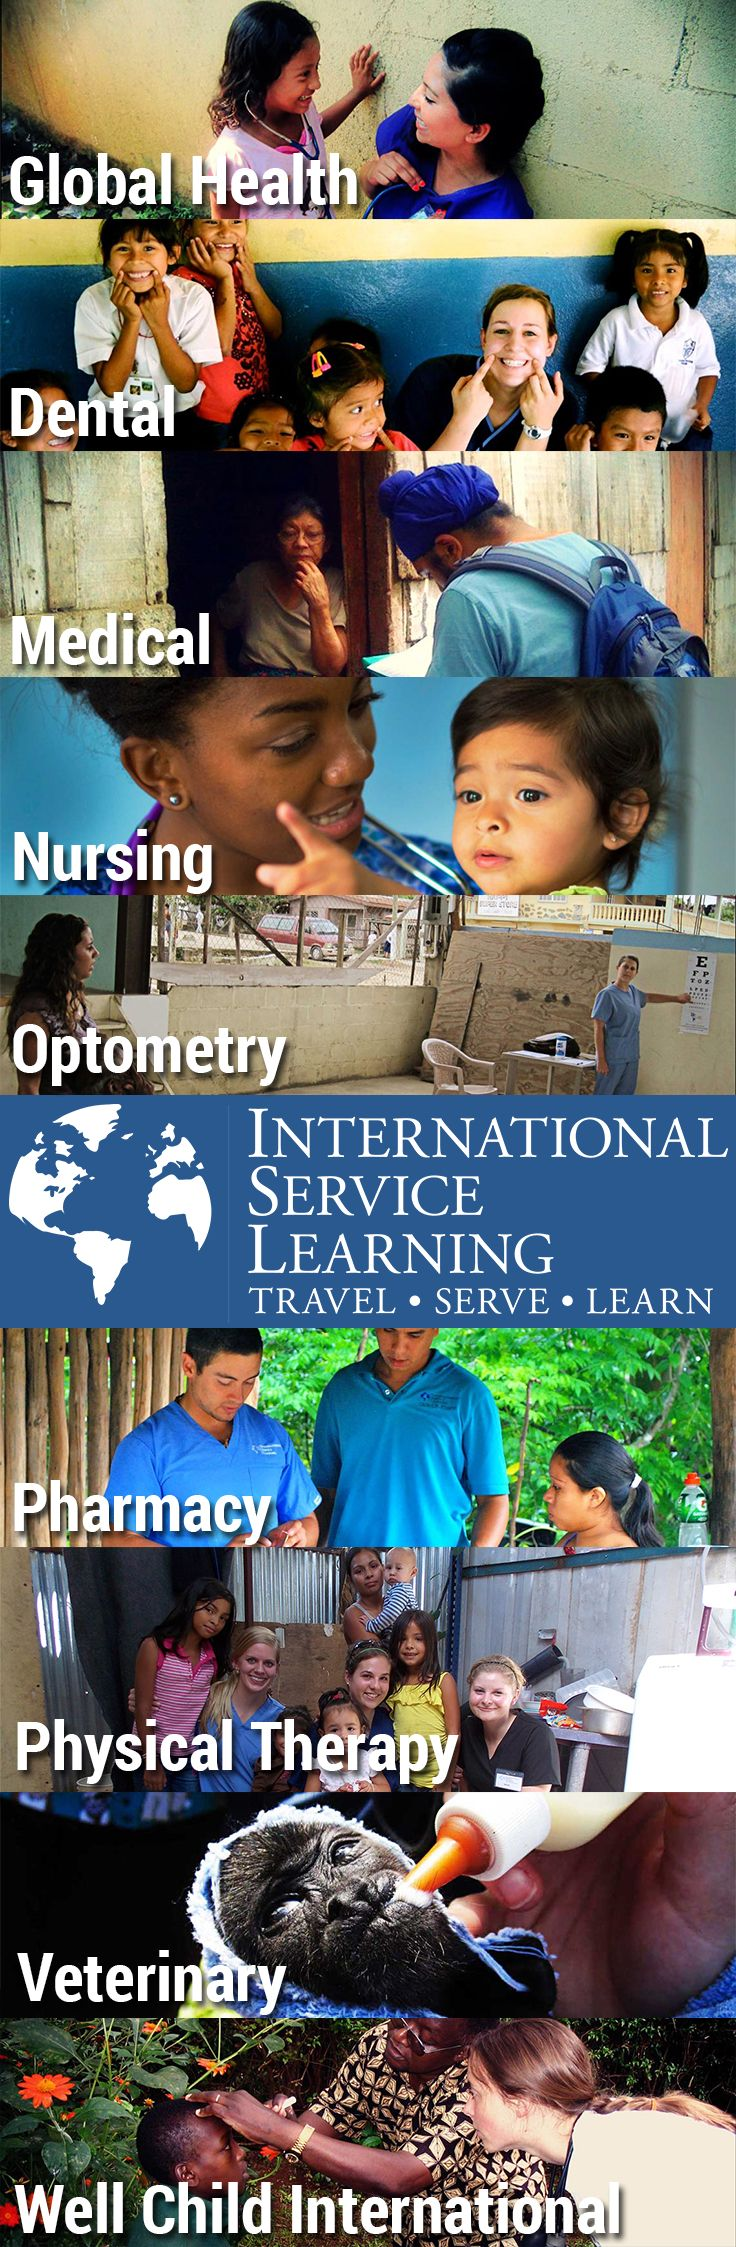 Here are a few of the programs that ISL has to offer! With everything from medical trips to ecology trips, there is something for everyone.